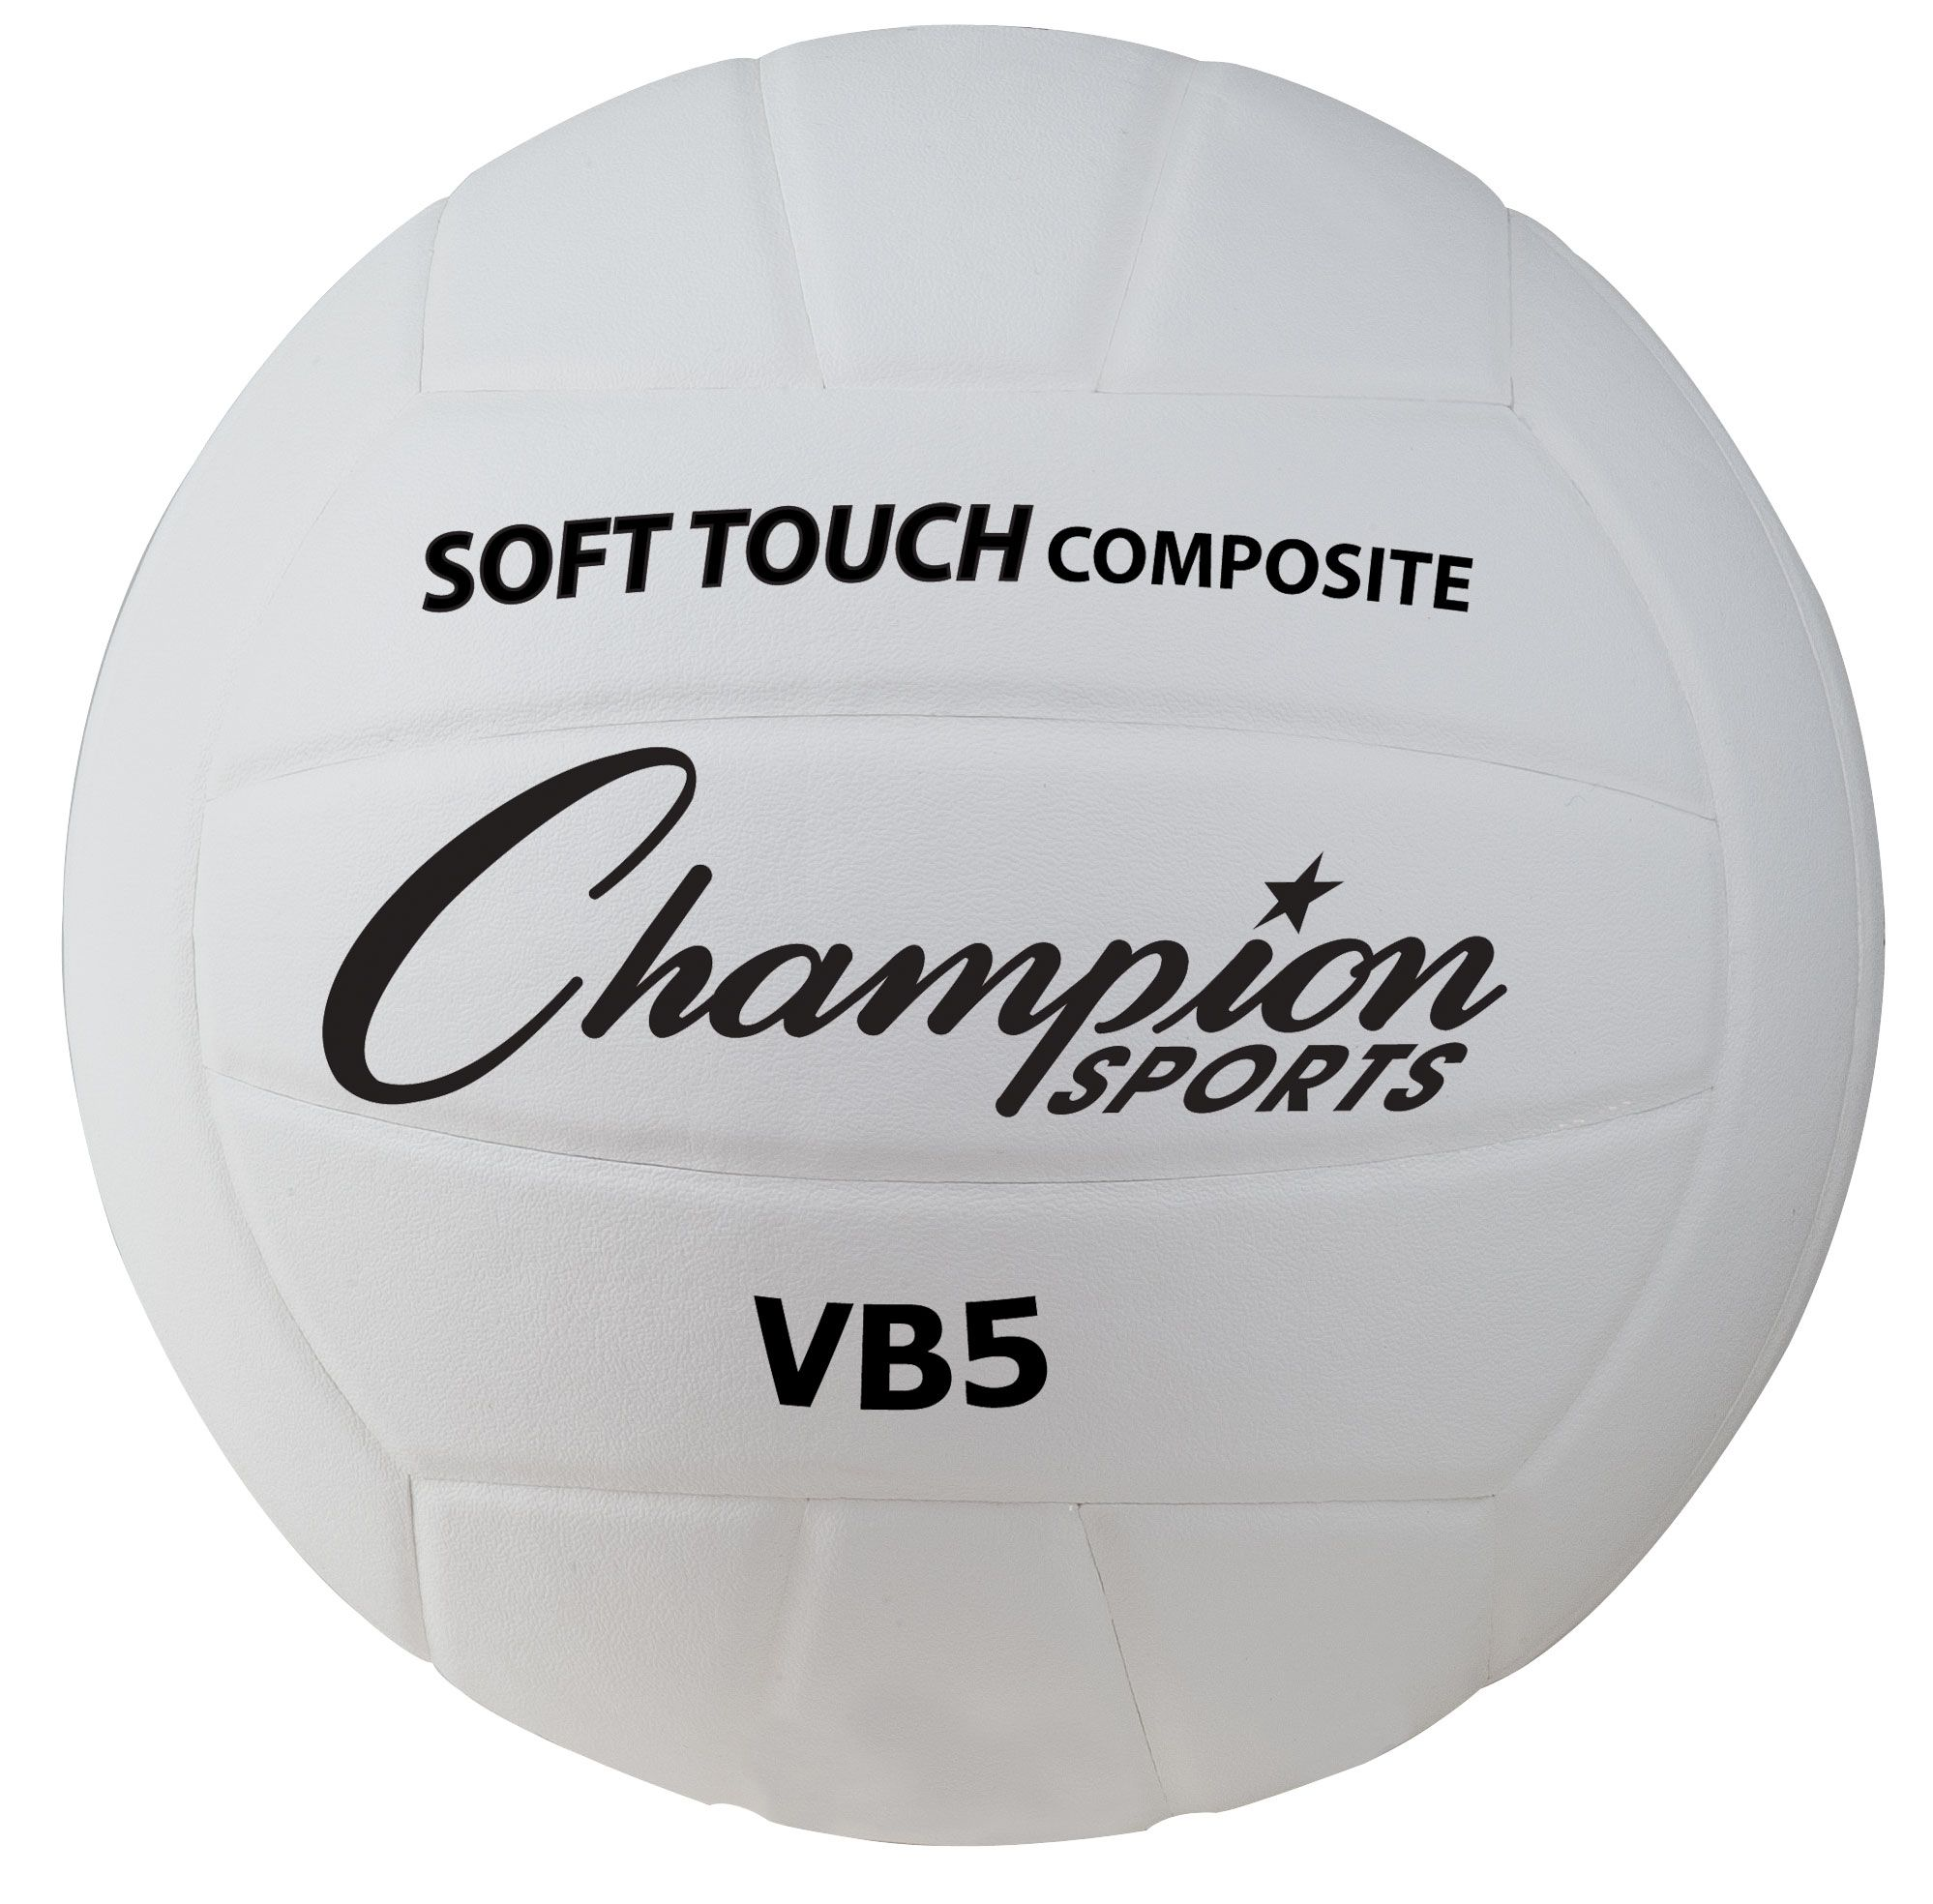 Physical Education Volleyball Volleyball Balls Deluxe Physical Education Volleyball Physics